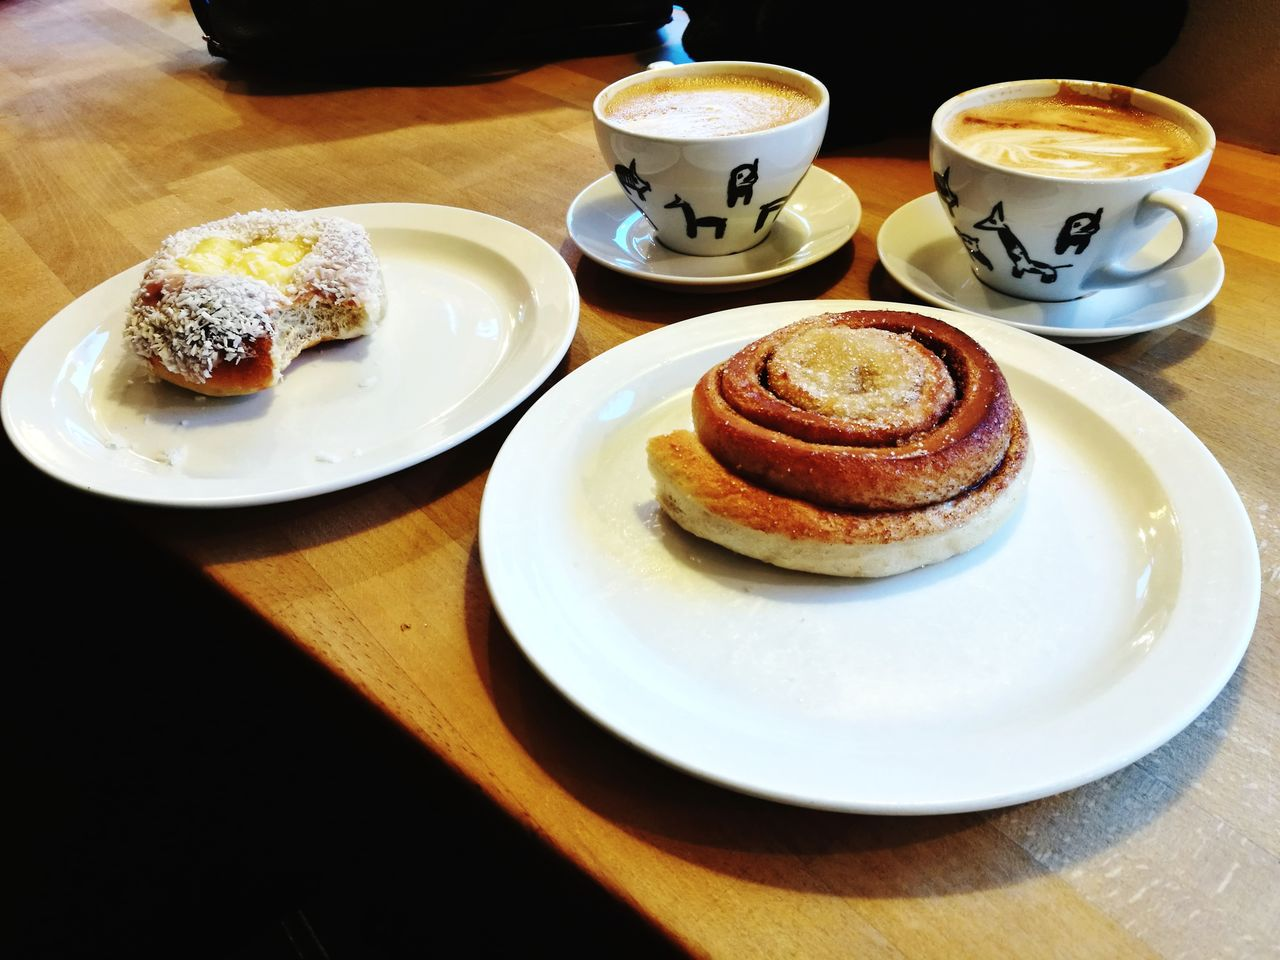 eatin' all the cinnamon rolls! Hanging Out Norway Cinnamon Roll Bakery Smellsgood Caloriesoverload Warm Inside Table Coffee Cup Food And Drink Plate Refreshment